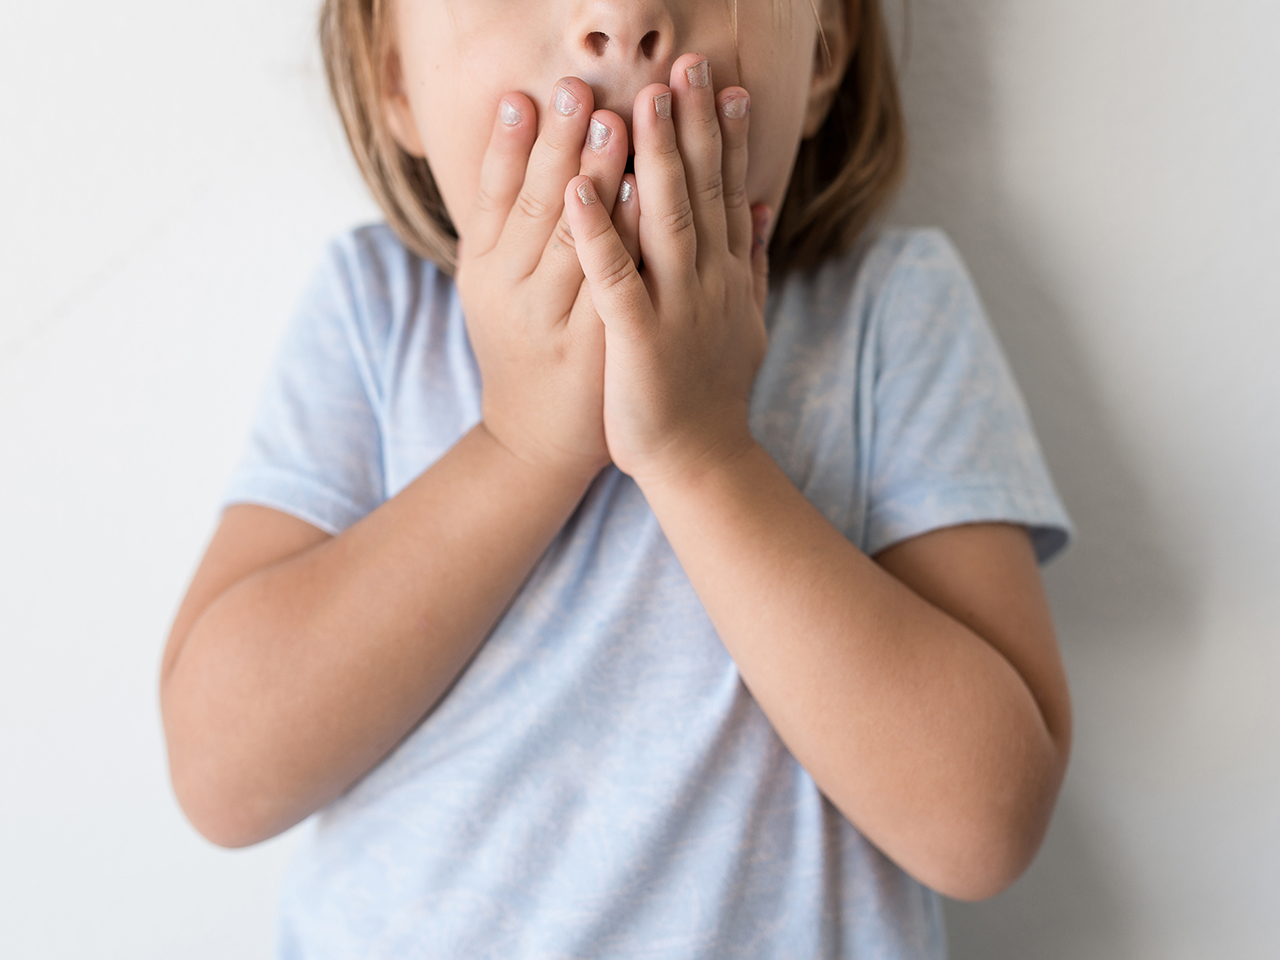 Child with her hands covering her mouth